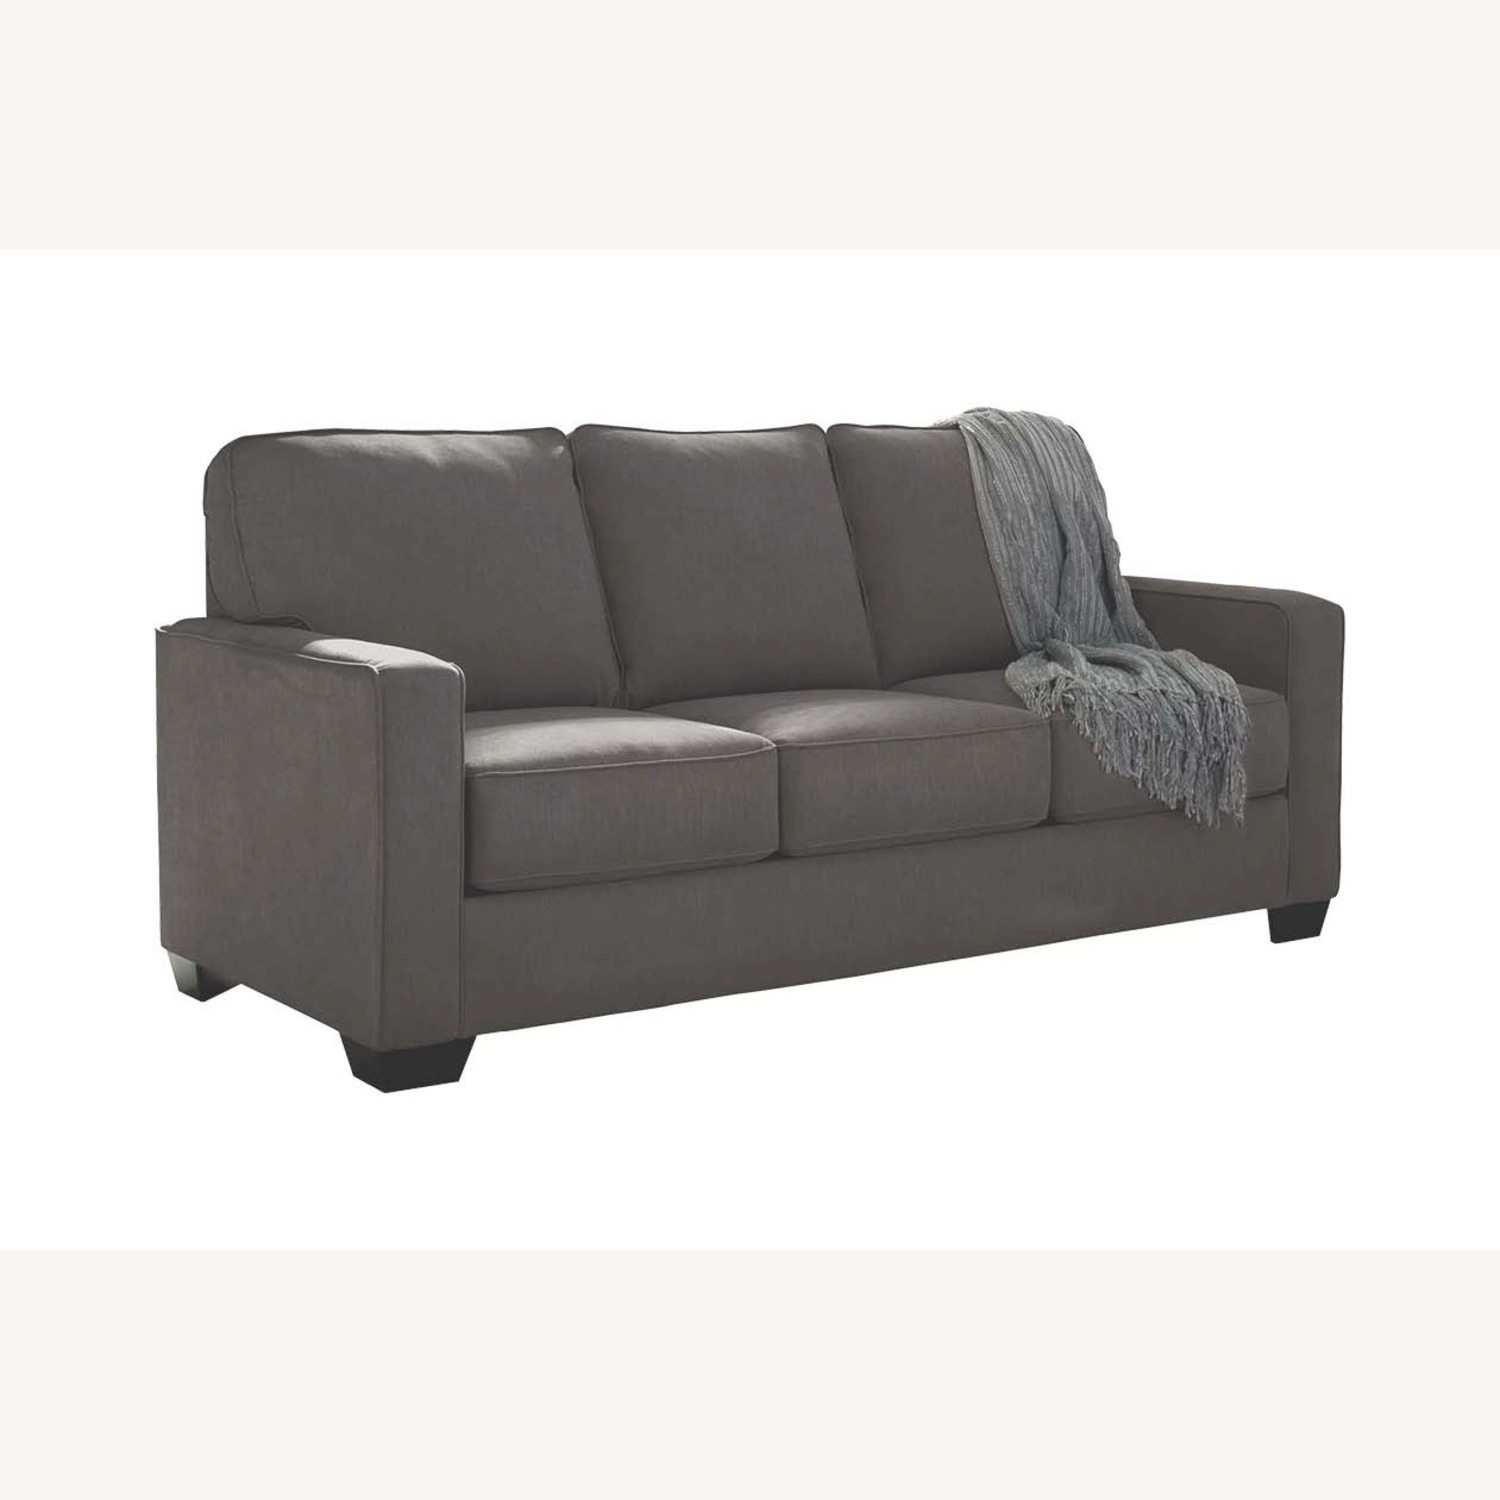 Ashley Furniture ZEB Sleeper Sofa - image-17